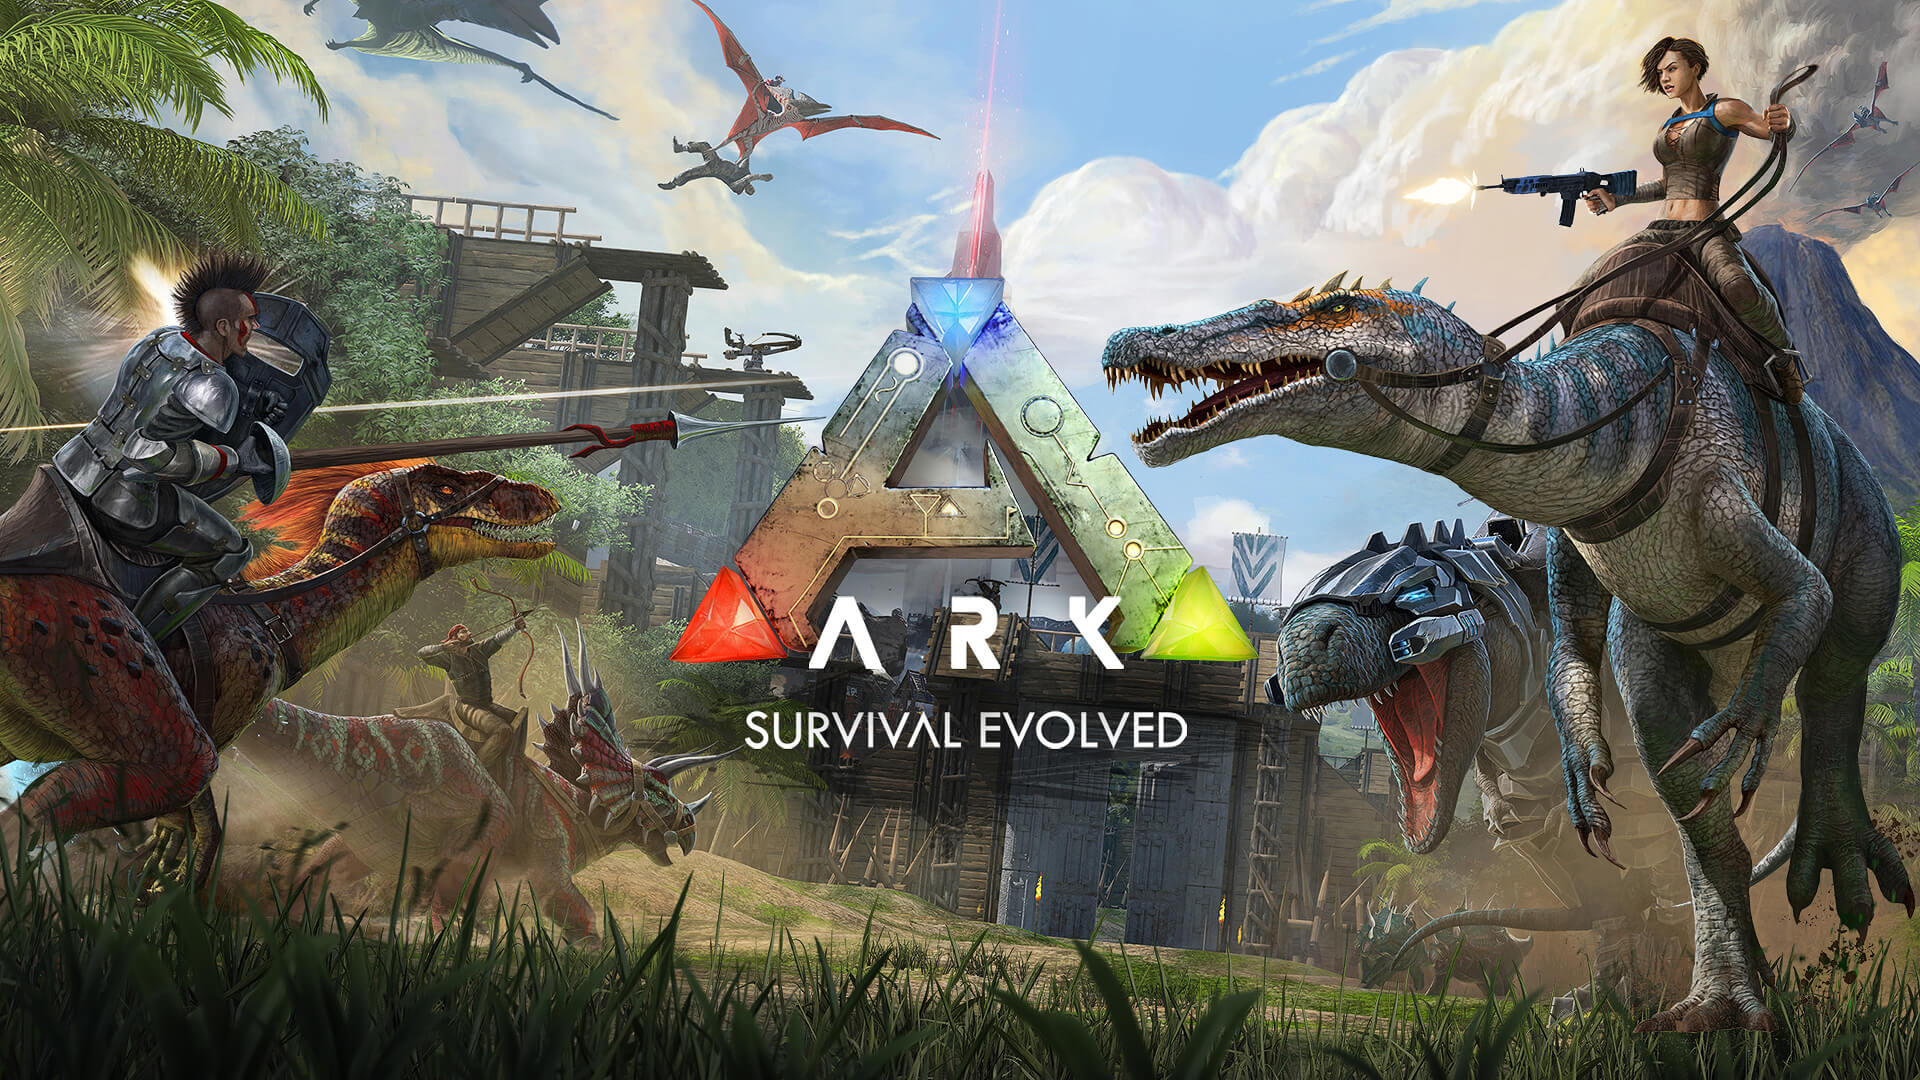 Is Ark: Survival Evolved in 2020 still worth it to play right now?